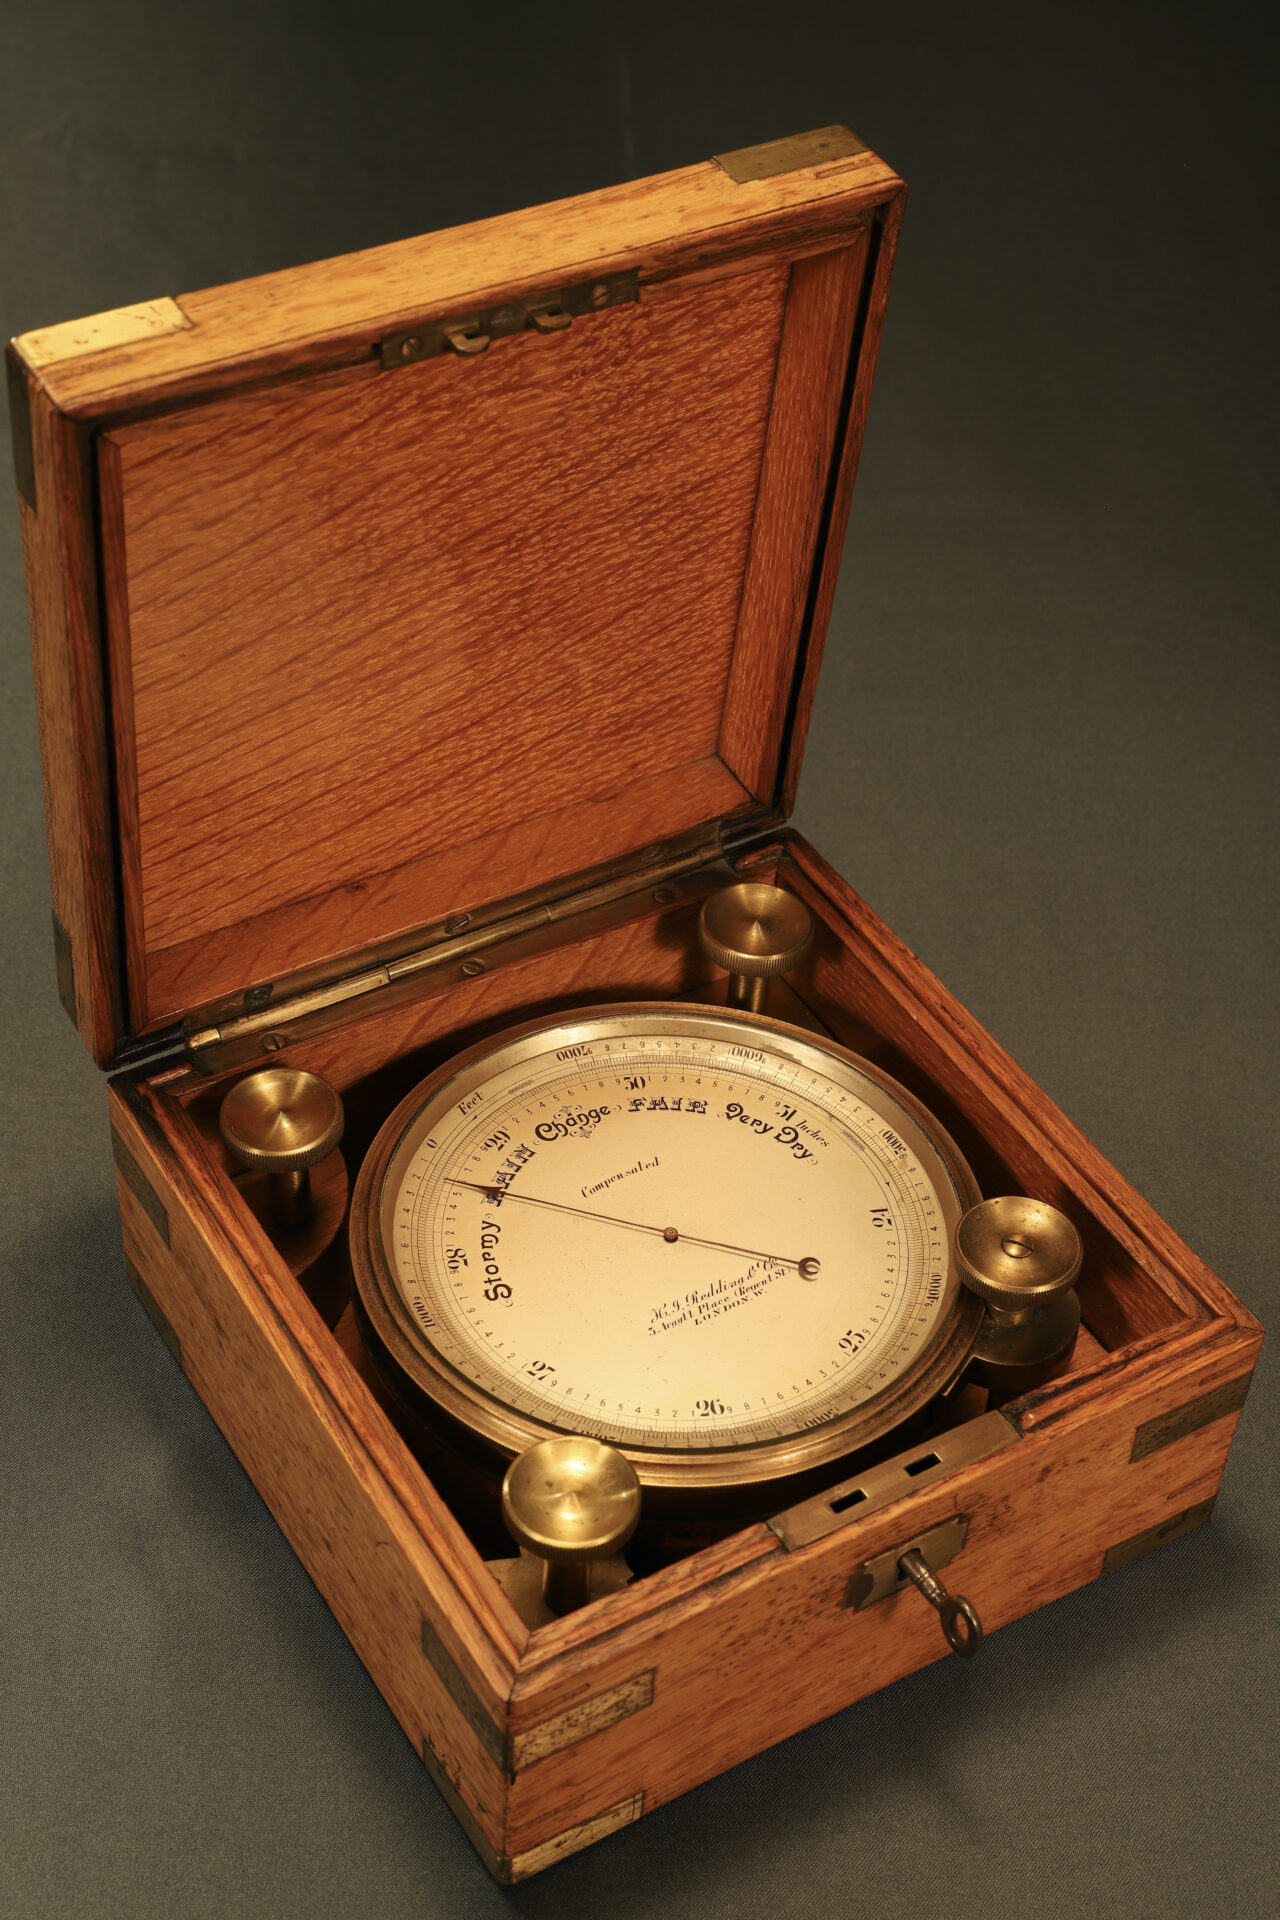 Image of open case from Short & Mason Chart Table Barometer c1906 showing barometer